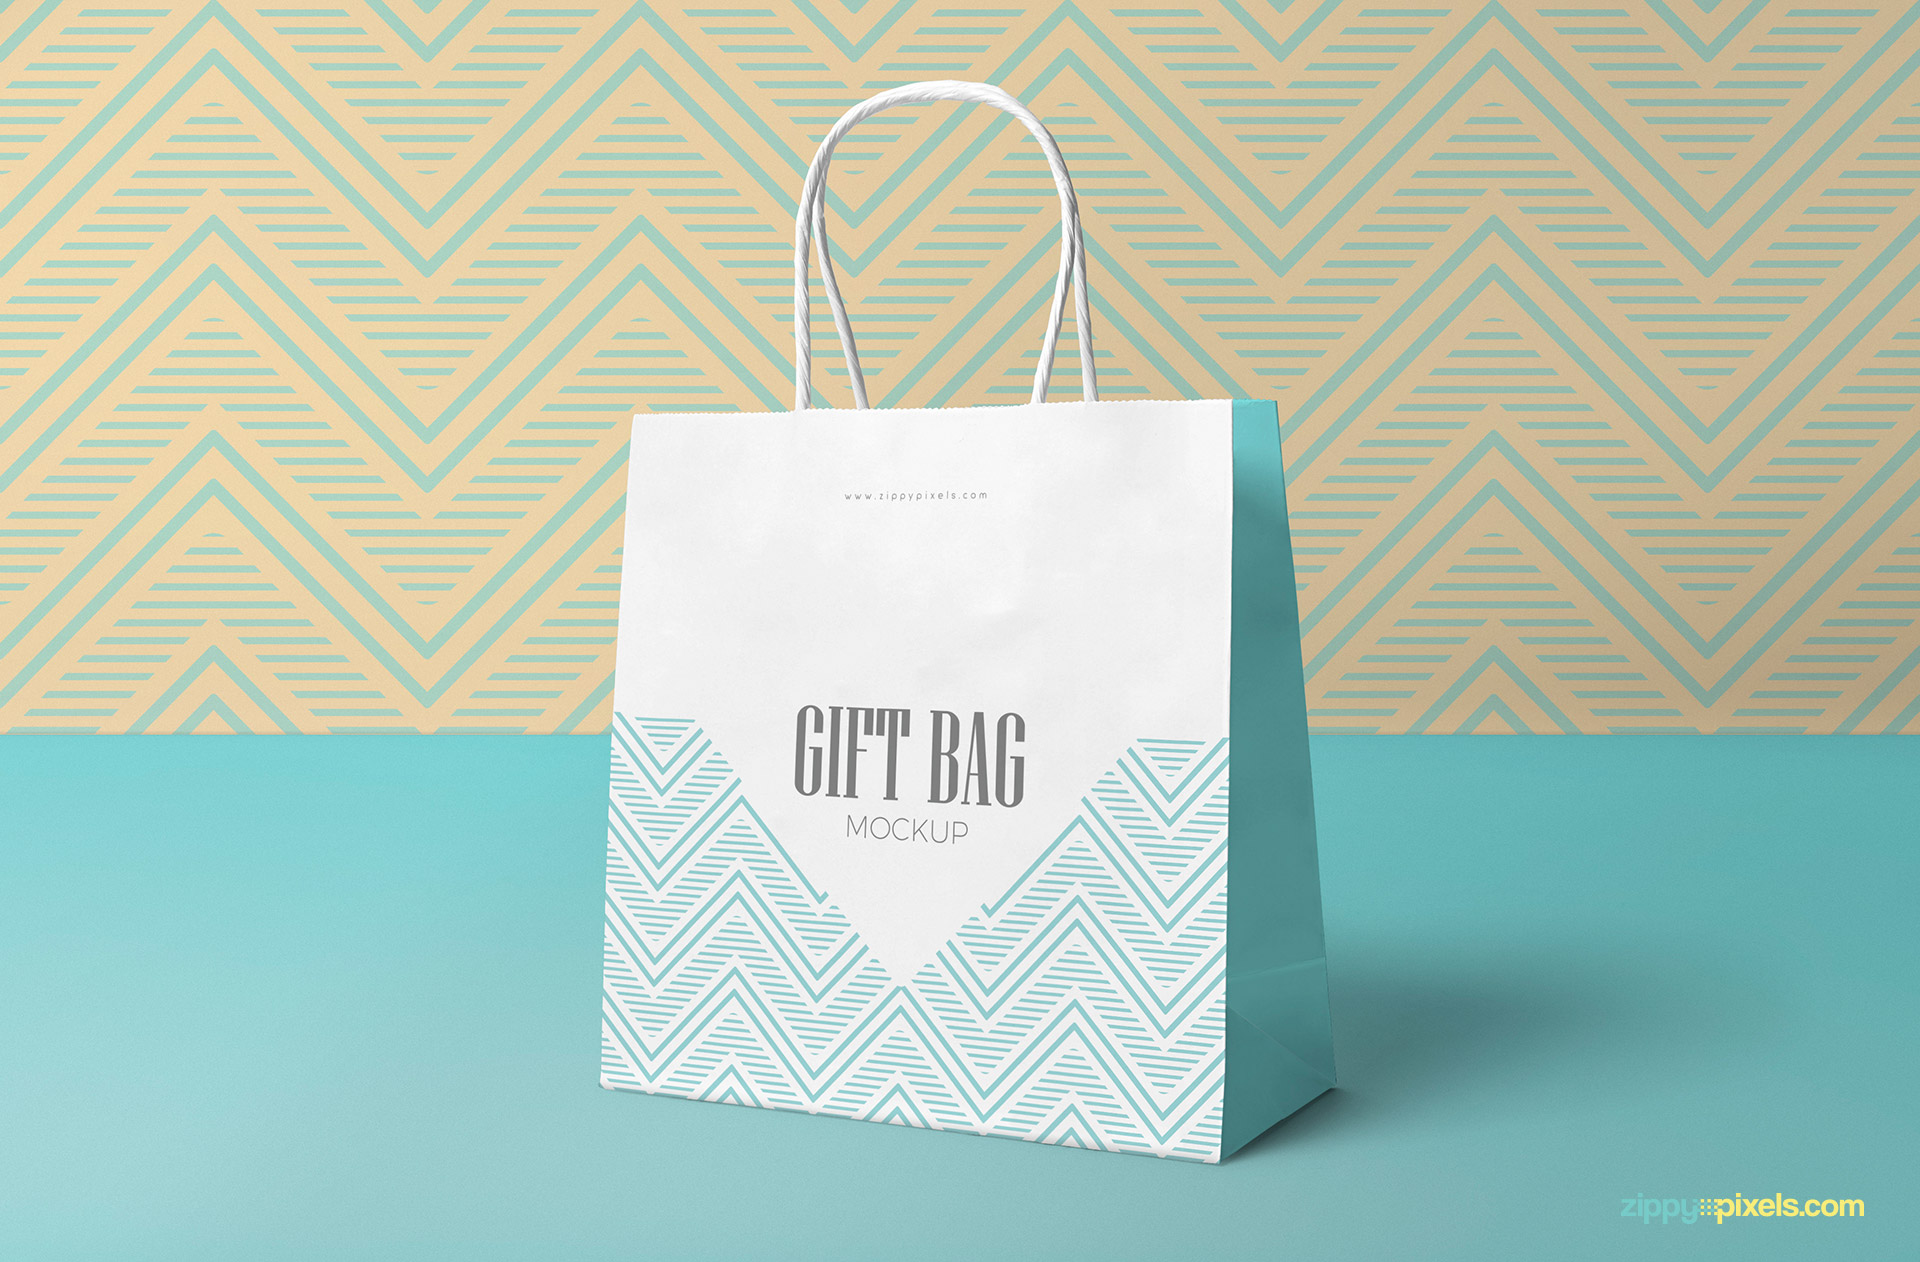 You can also change the color of the straps of the tote bag, the lanyard of id card, the outline of the cardholder, inner sides of both bags, lid of the cup and base of the cup. Free Attractive Gift Bag Mockup Zippypixels